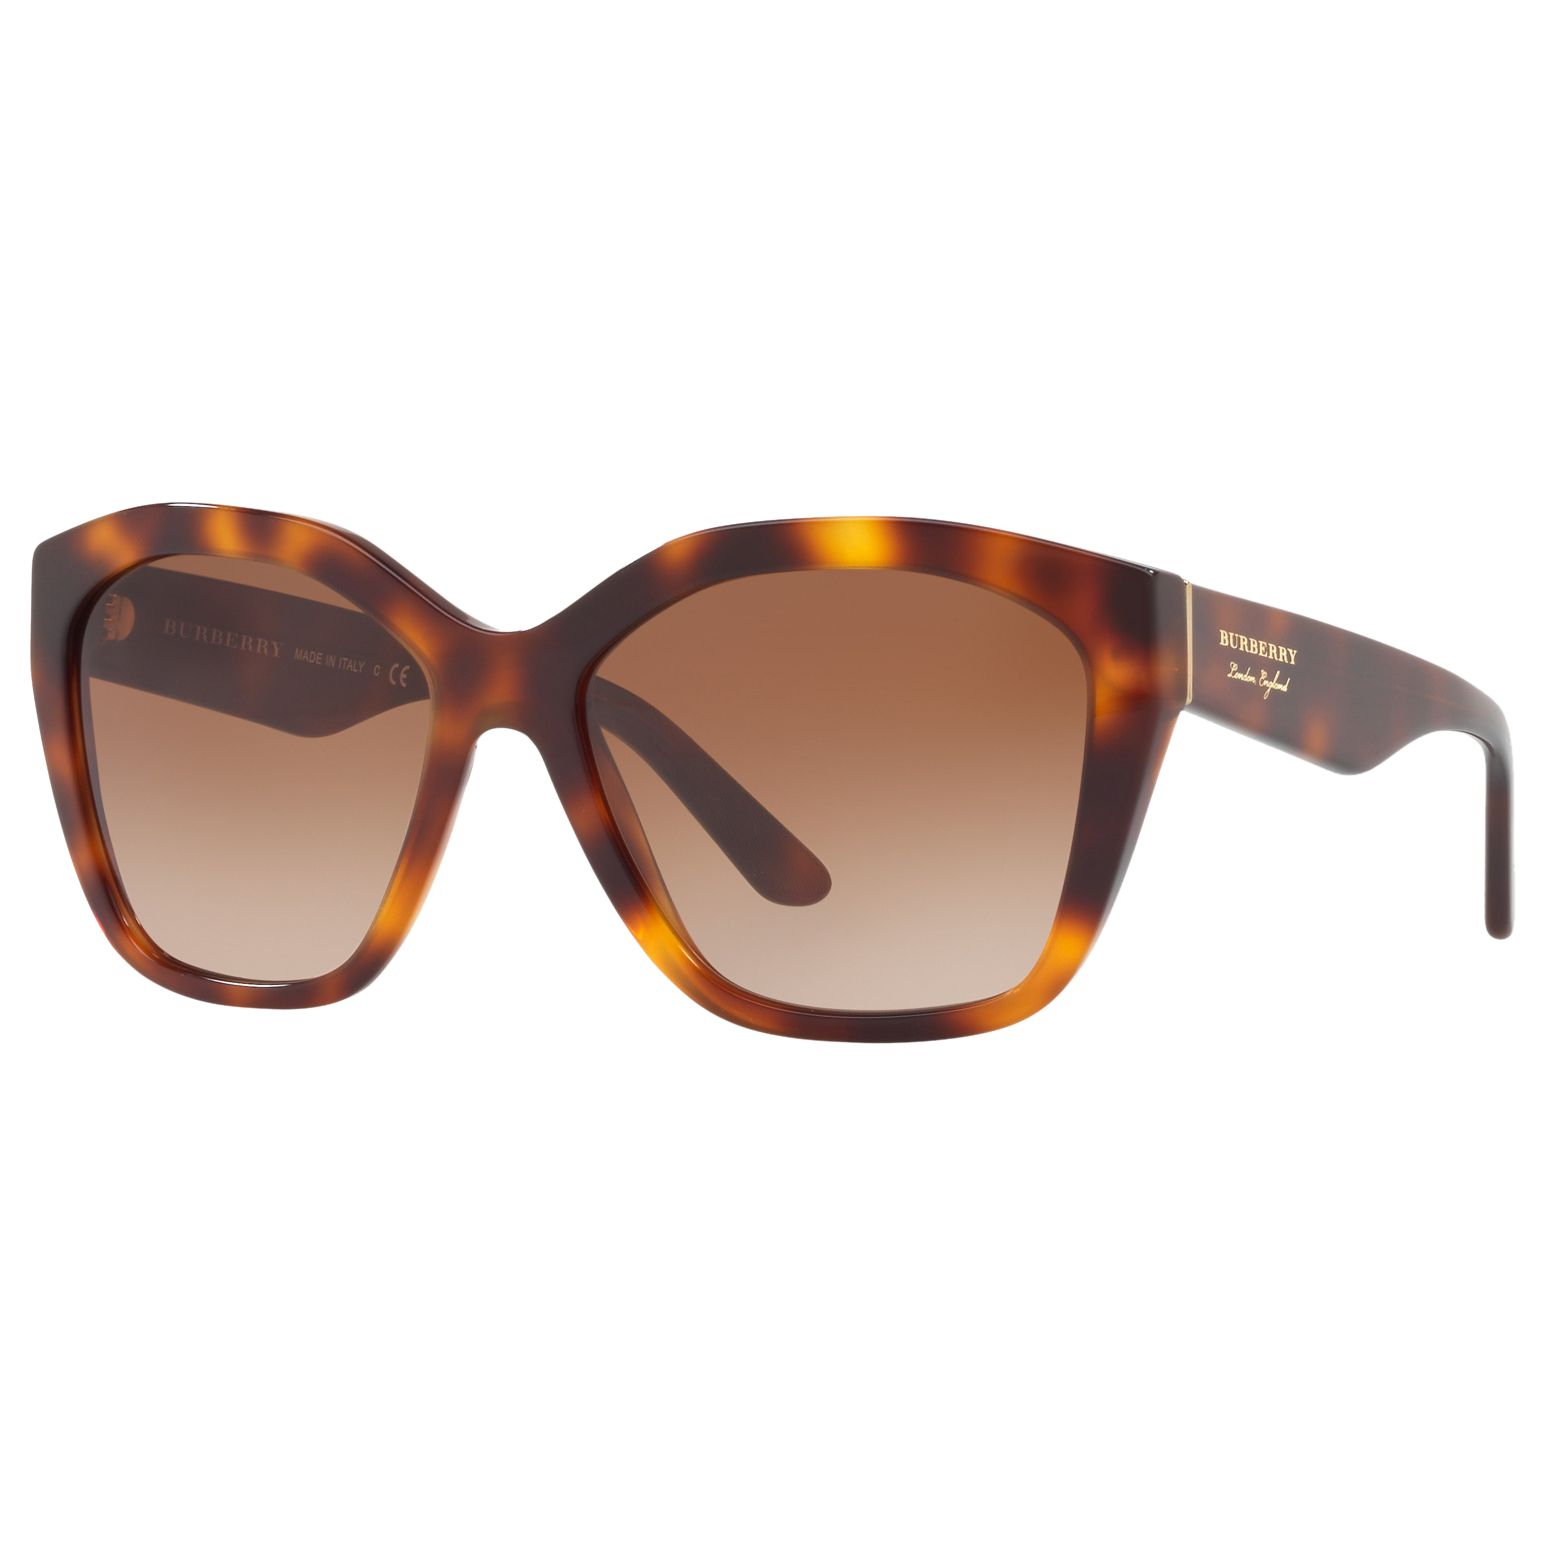 Burberry Burberry BE4261 Square Sunglasses, Tortoise/Brown Gradient